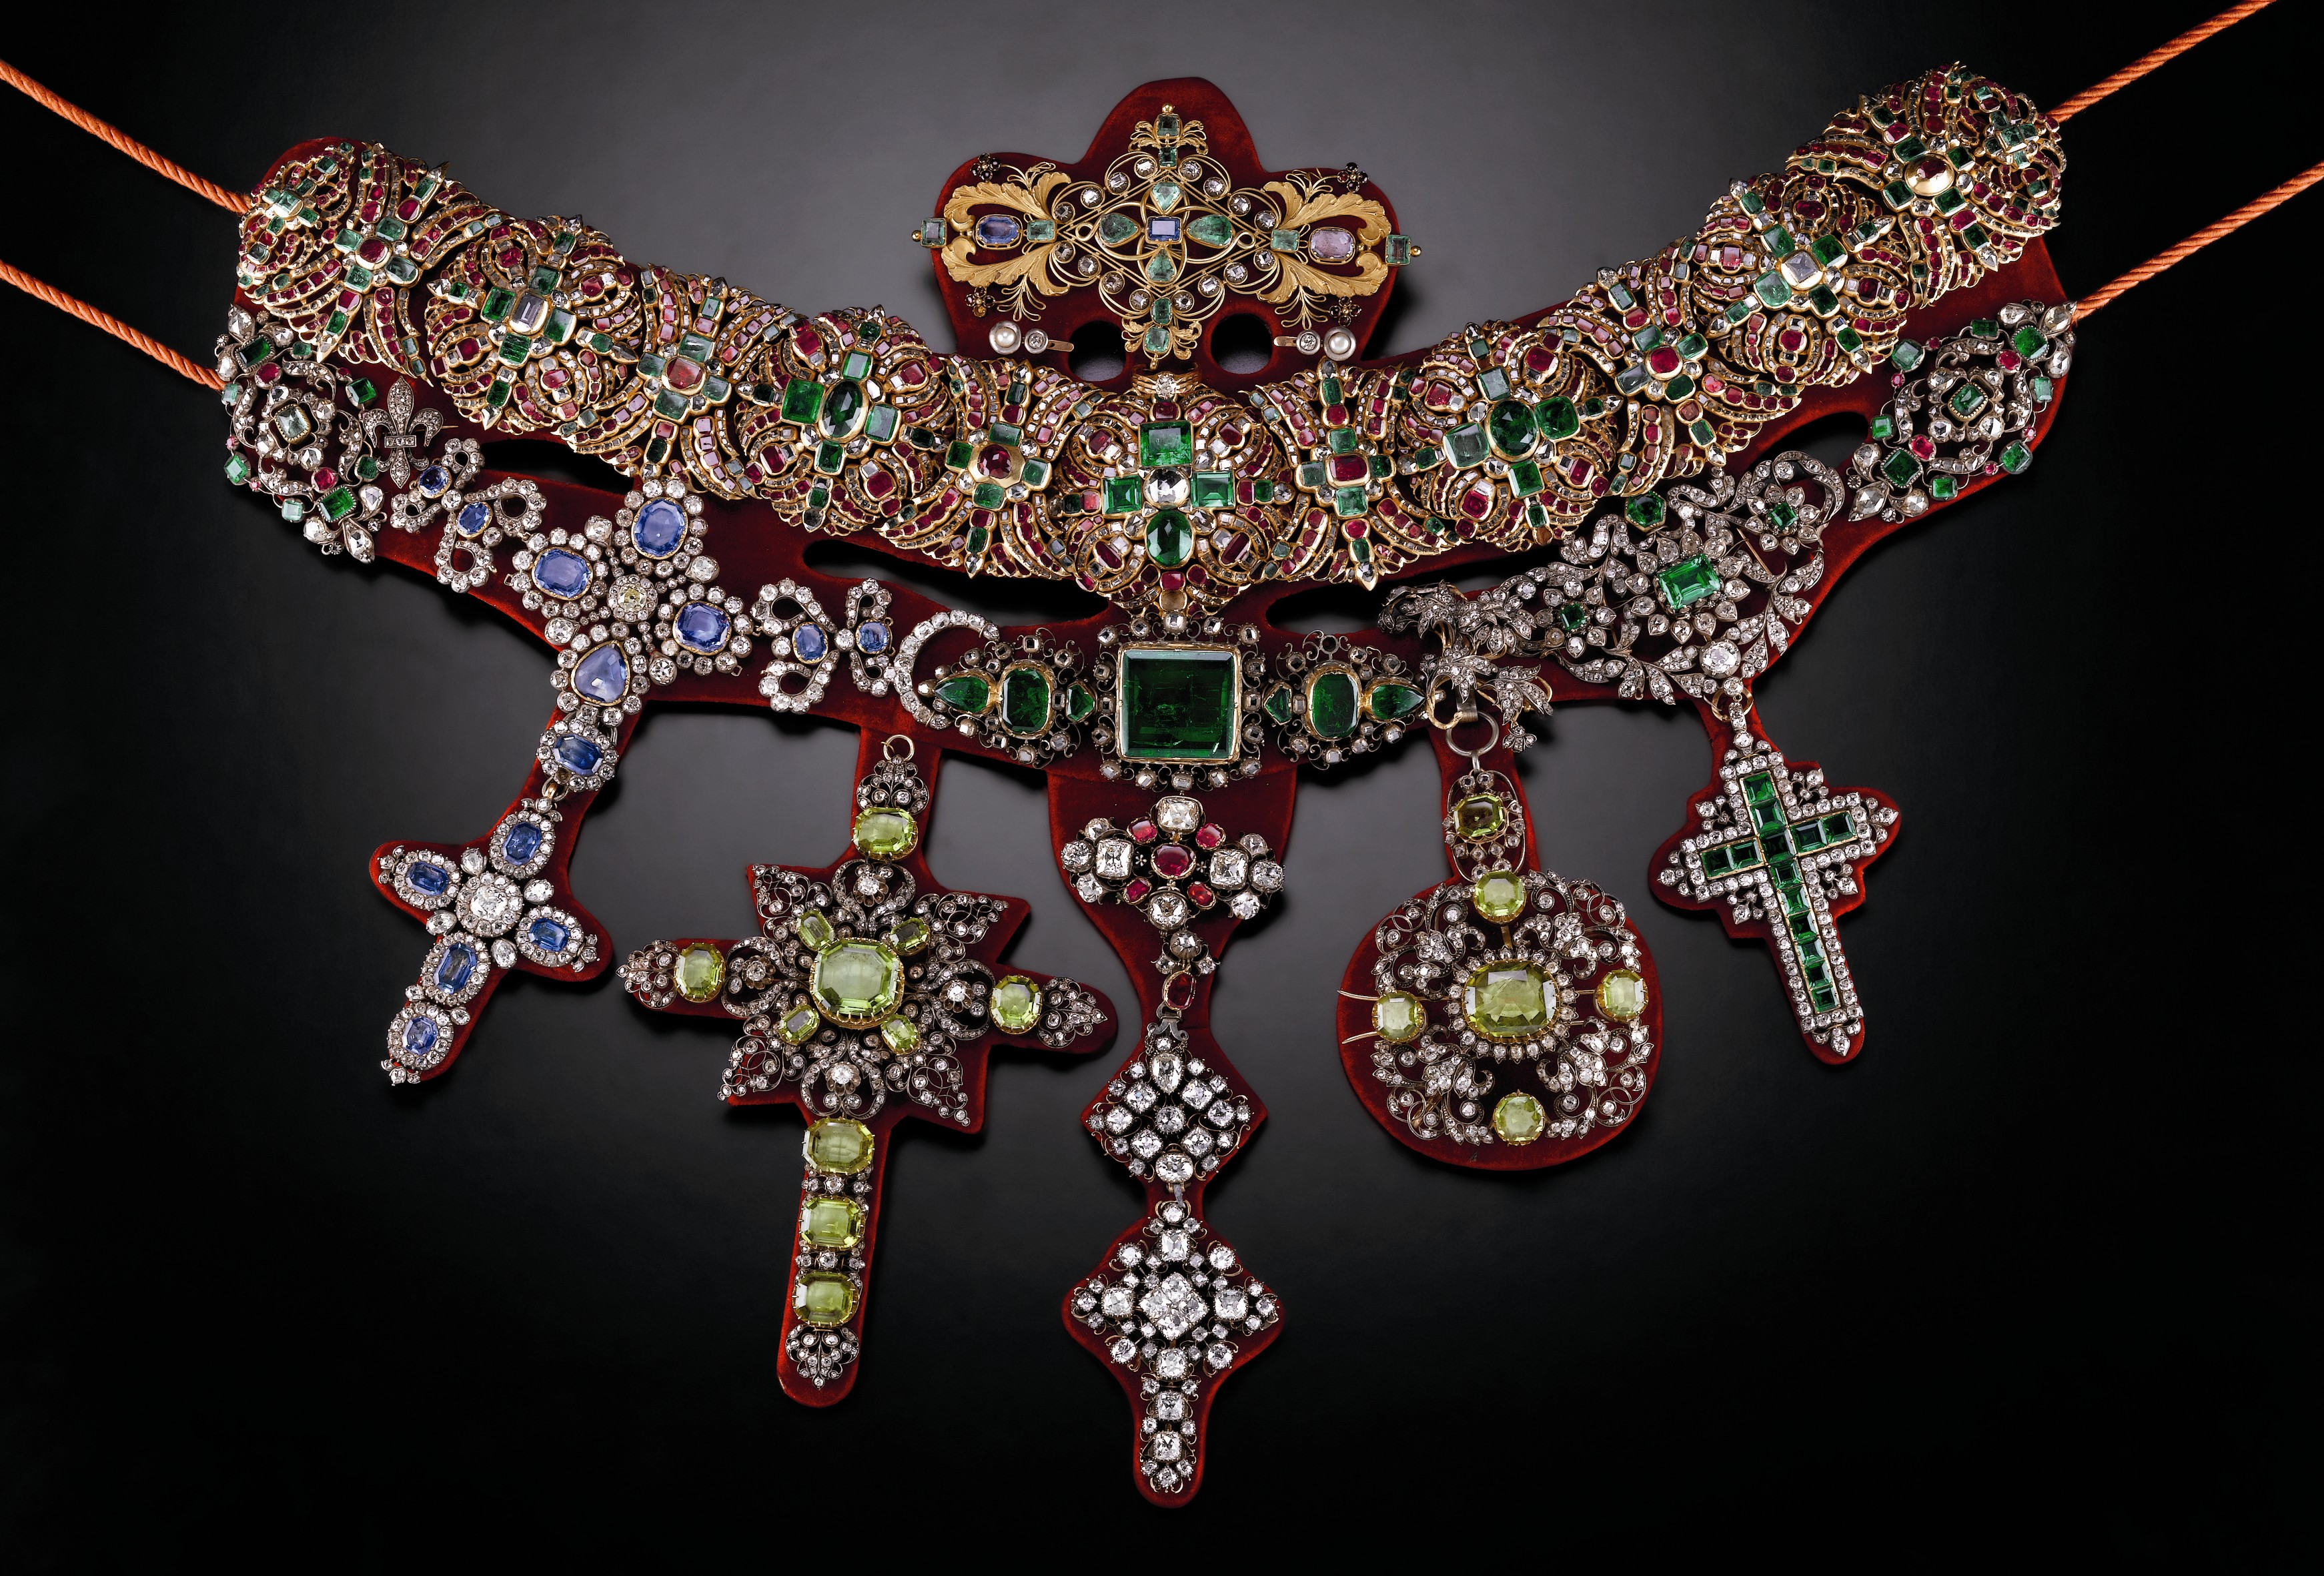 Necklace from the collection of San Gennaro